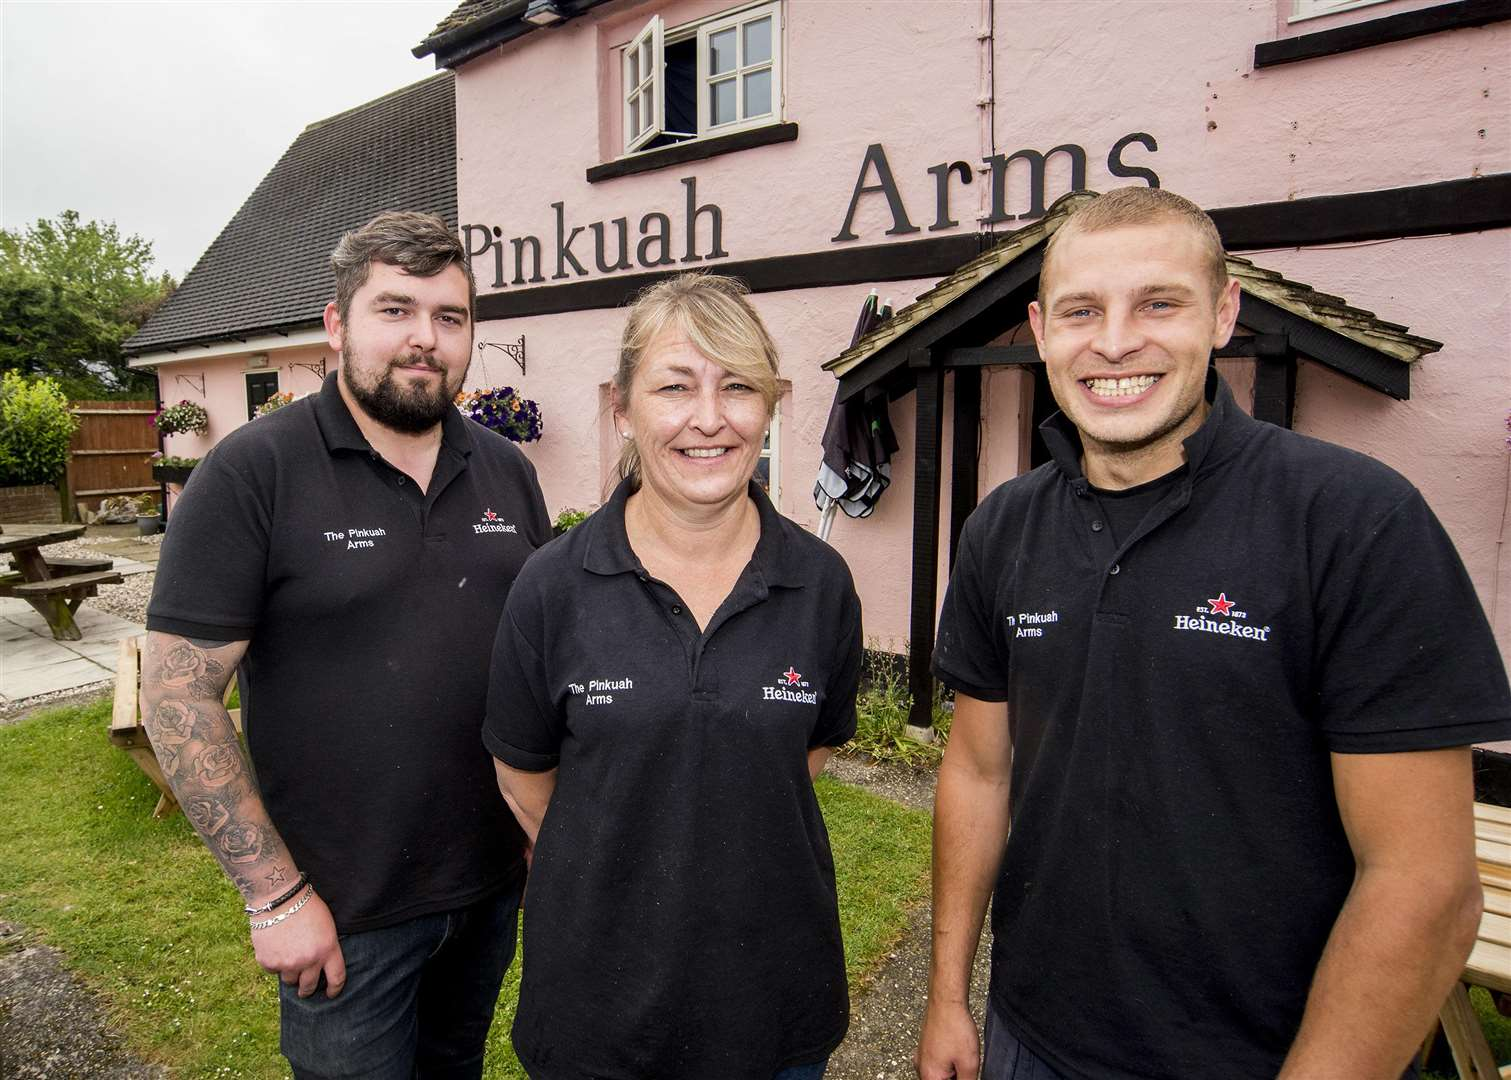 Pinkuah Arms pub, Pinkuah Lane, SudburyPinkuah Arms pub has reopened in Pentlow after being shut for months.Rebecca Gowing is the new landlord who has taken it over after moving from Kent.Rebecca Gowing with chefs Thomas Reeve and Anthony Johns outside the pub. Picture Mark Westley (2281828)